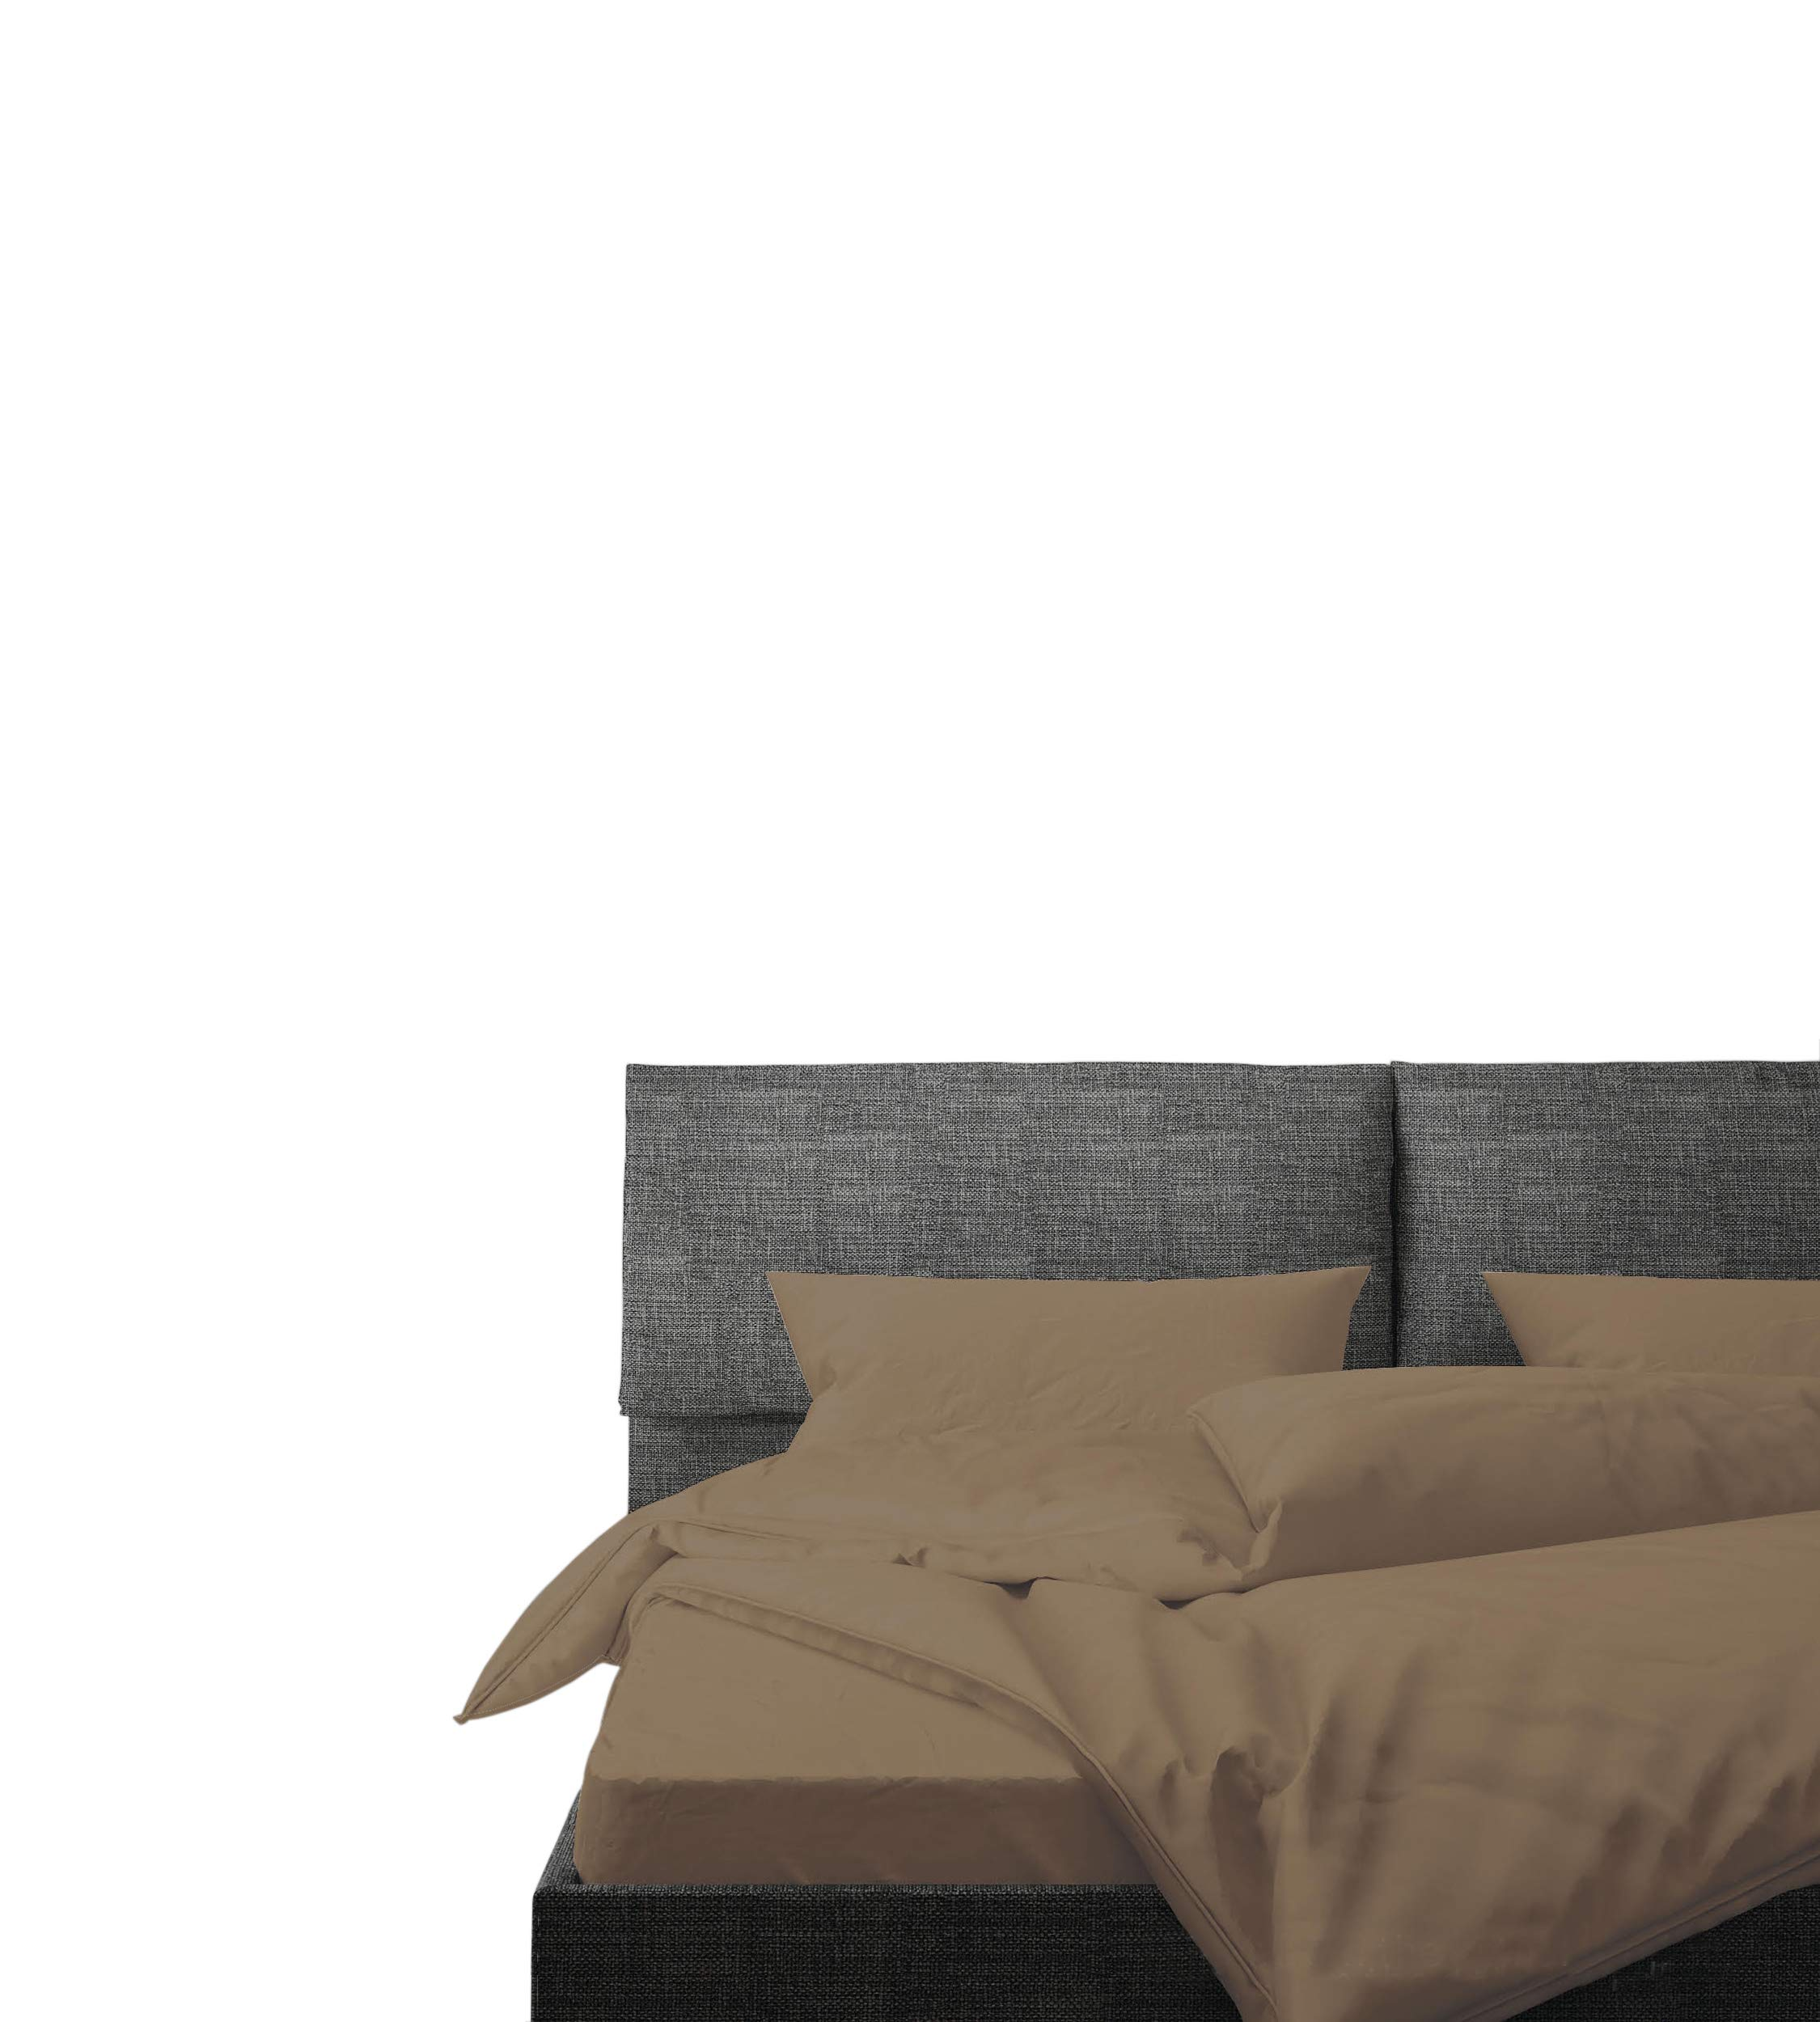 100 cotton percale sheet set taupe queen sheet 4 piece set long staple 854231008744 ebay. Black Bedroom Furniture Sets. Home Design Ideas